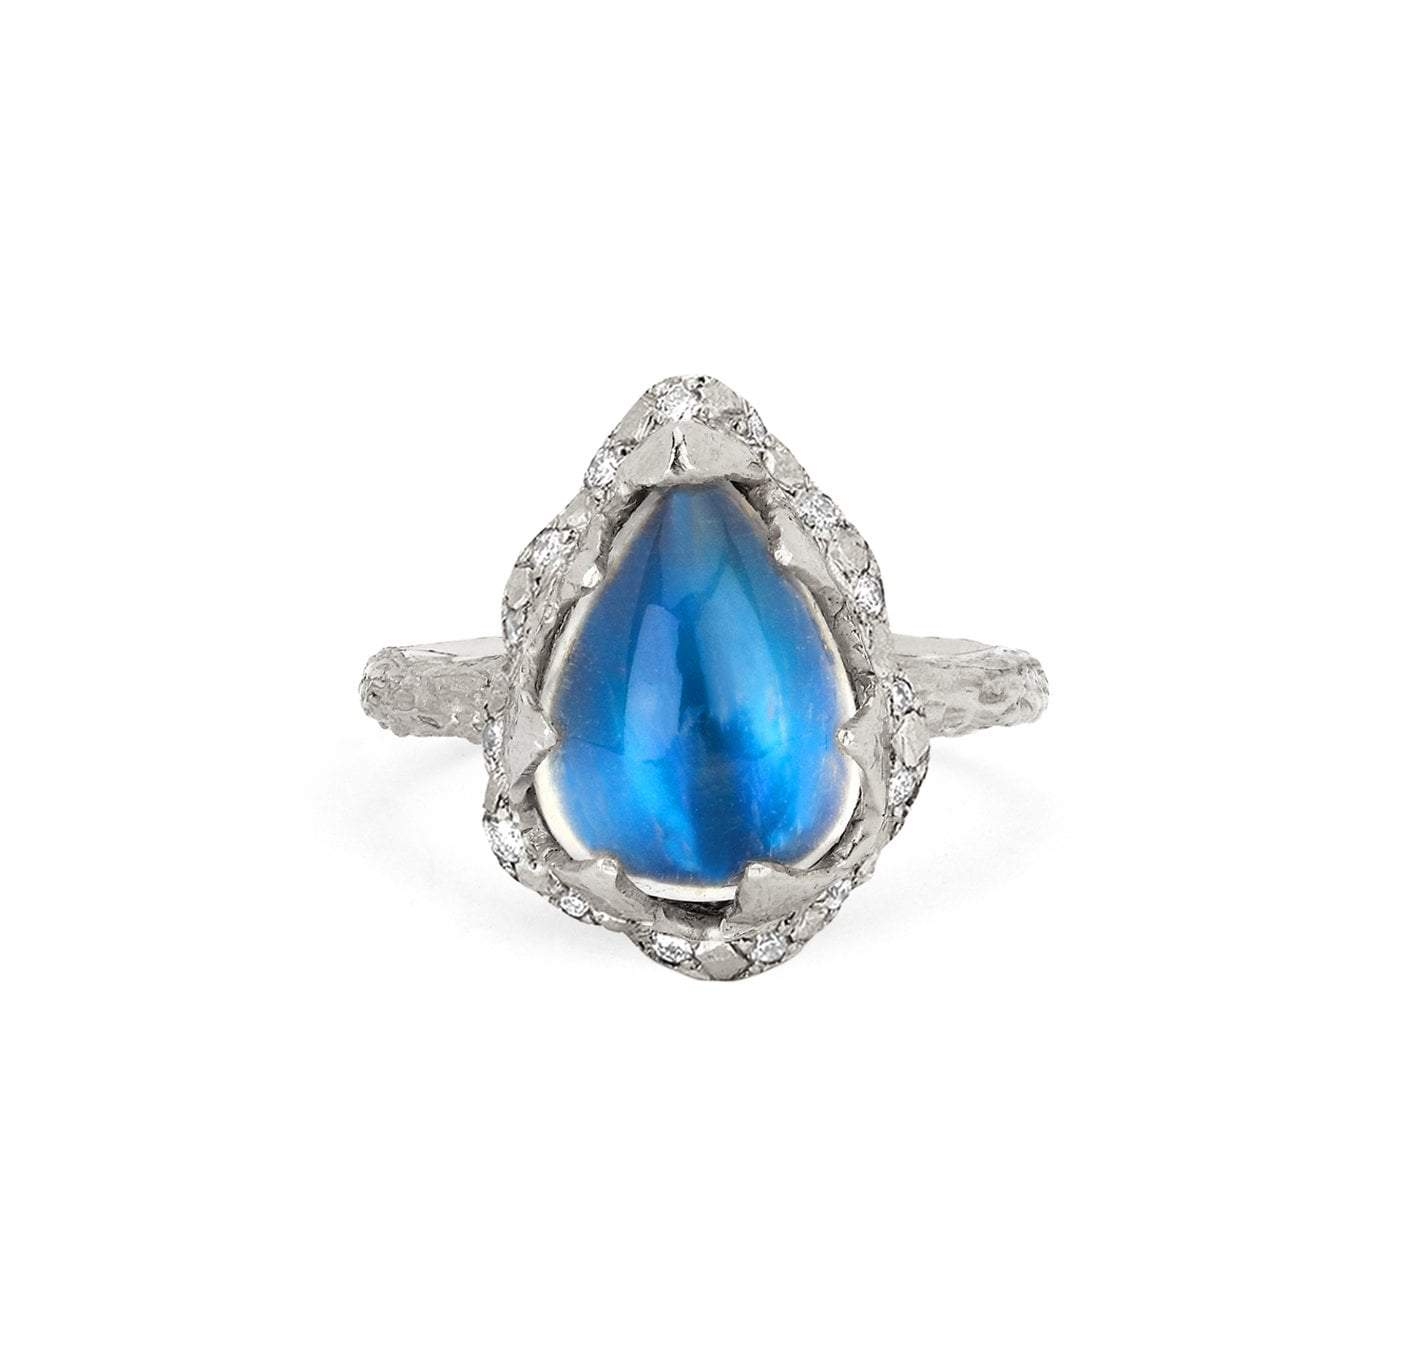 Baby Queen Water Drop Blue Sheen Moonstone Ring with Sprinkled Diamonds